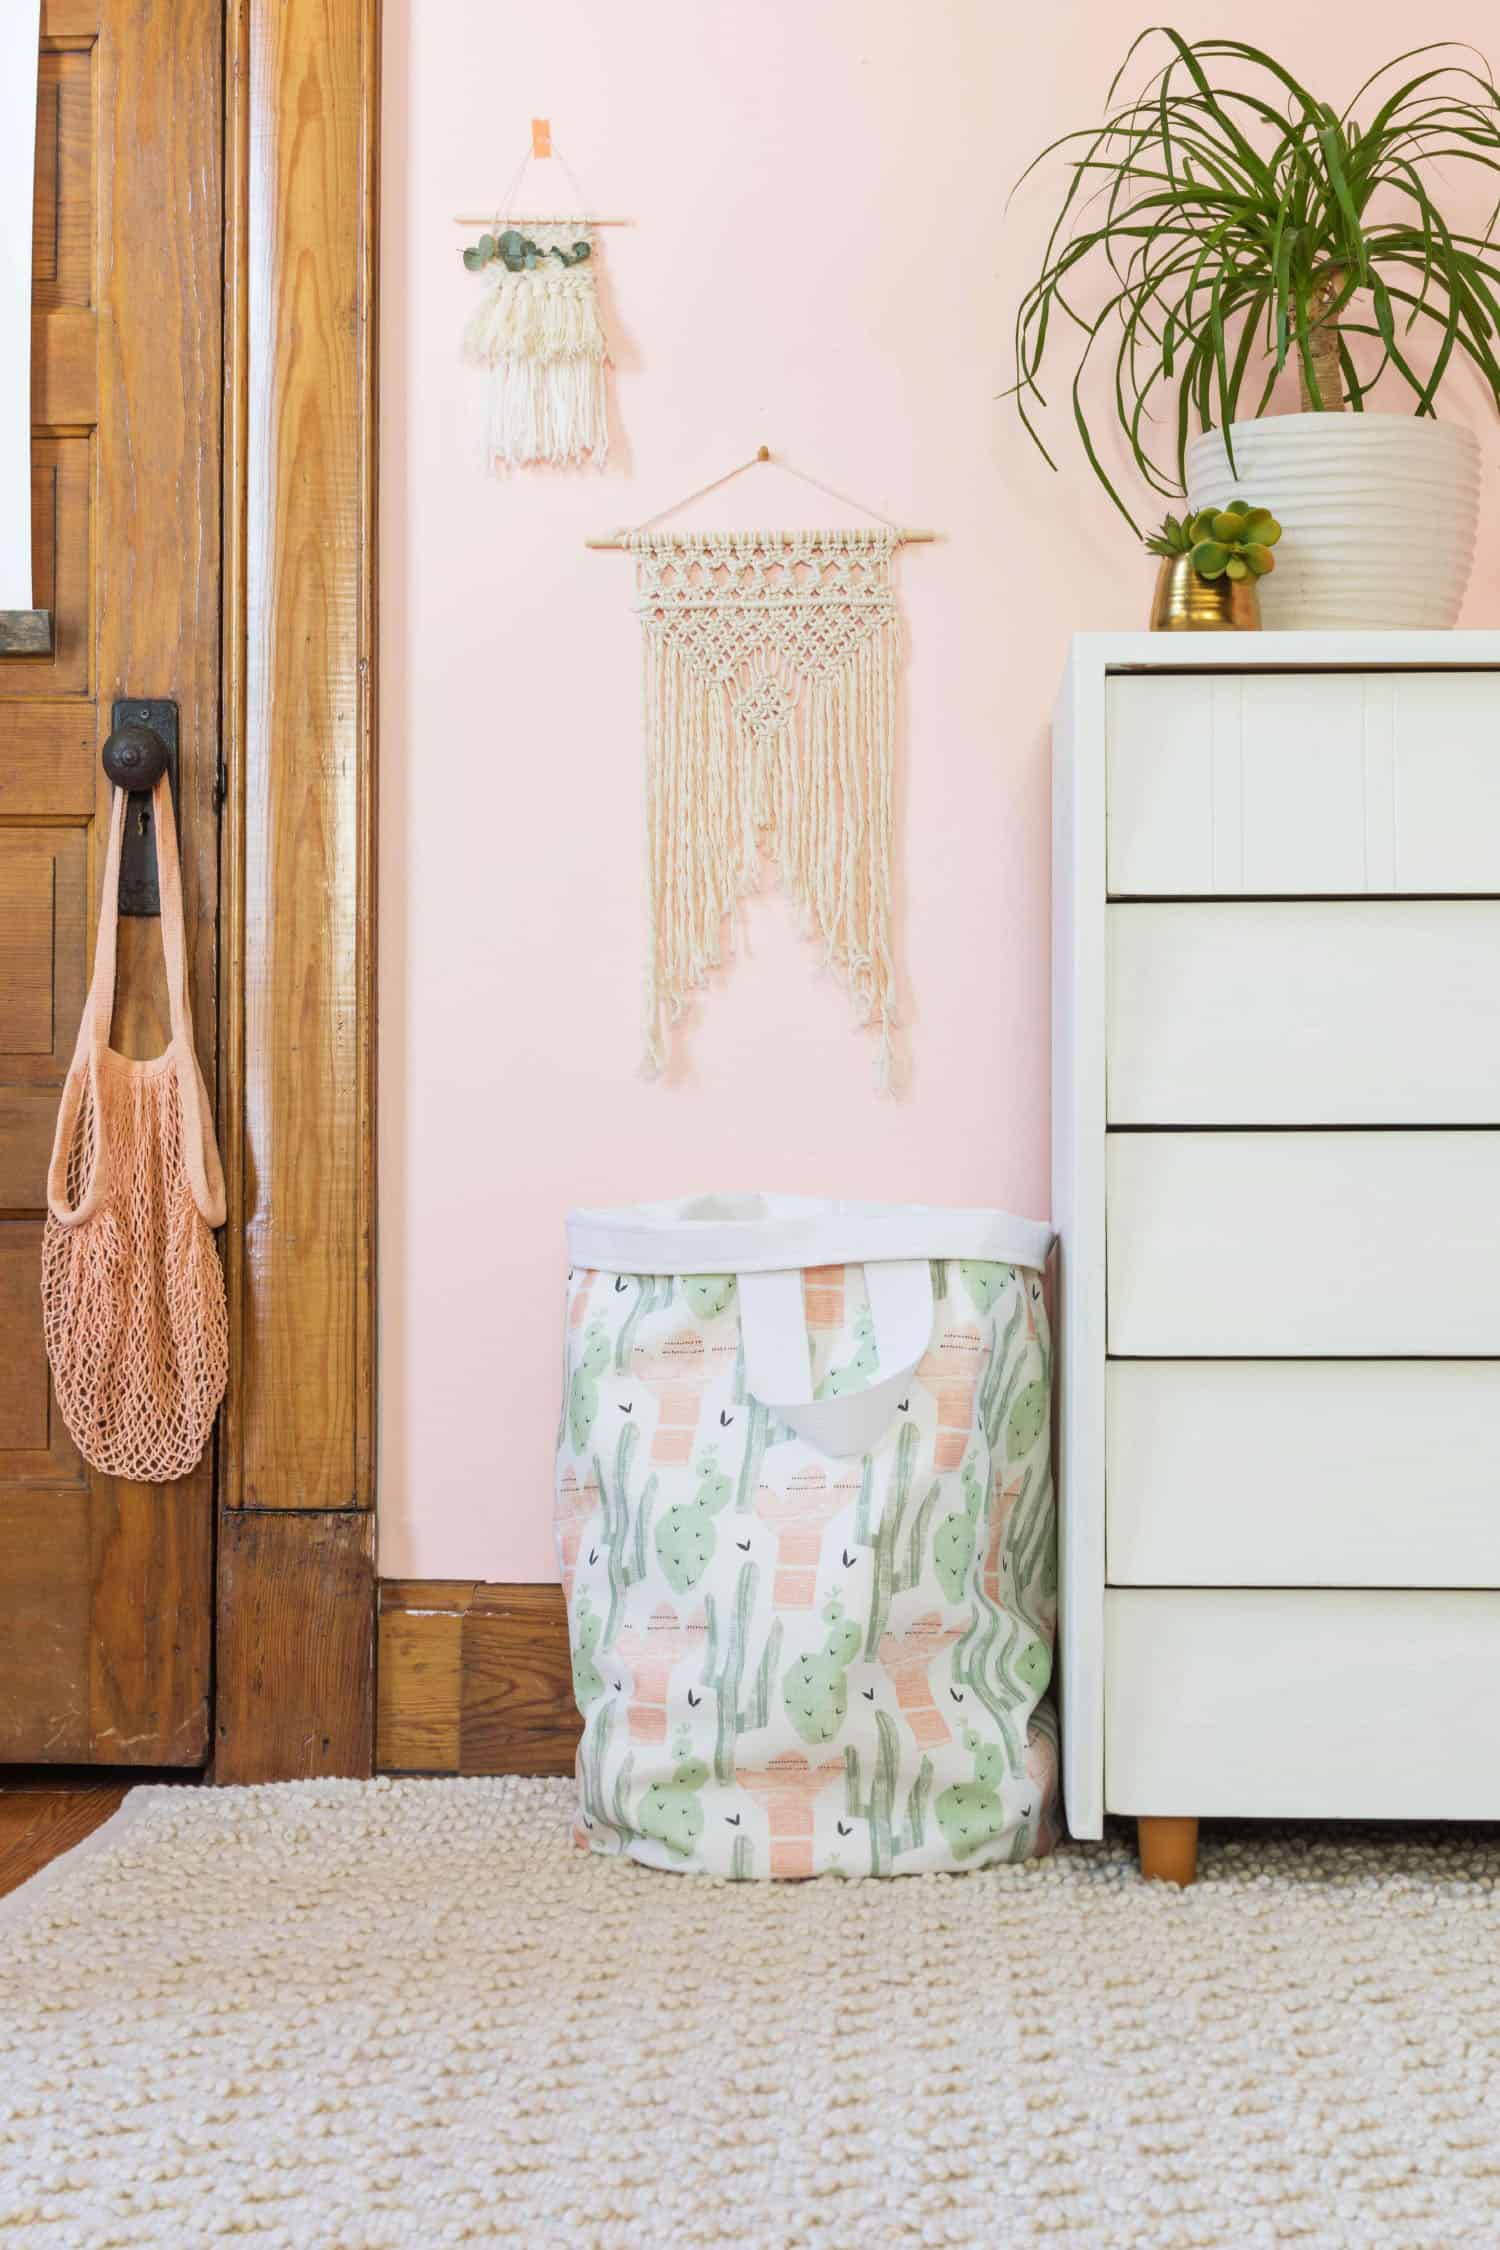 DIY sewn laundry basket of printed fabric